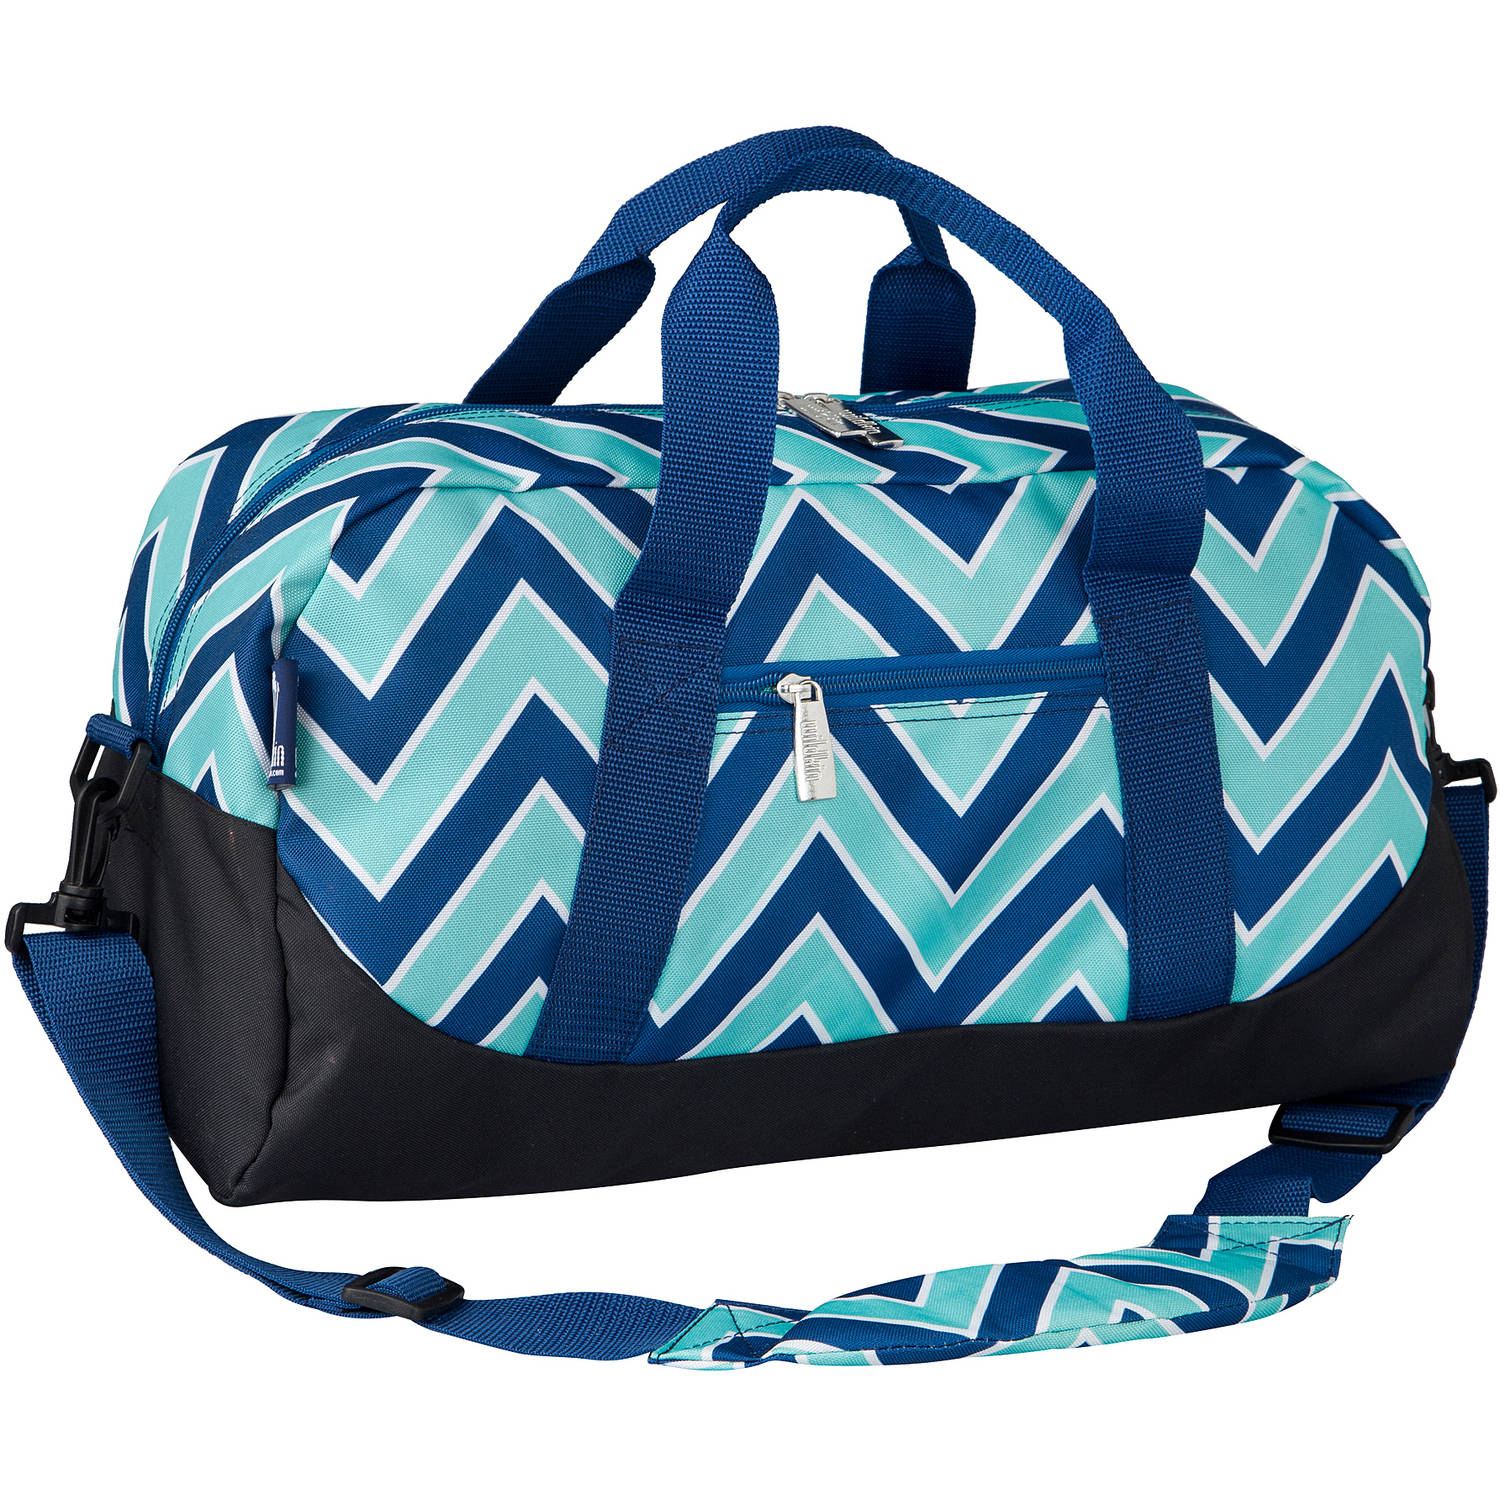 Wildkin Zigzag Lucite Overnighter Duffel Bag by Wildkin